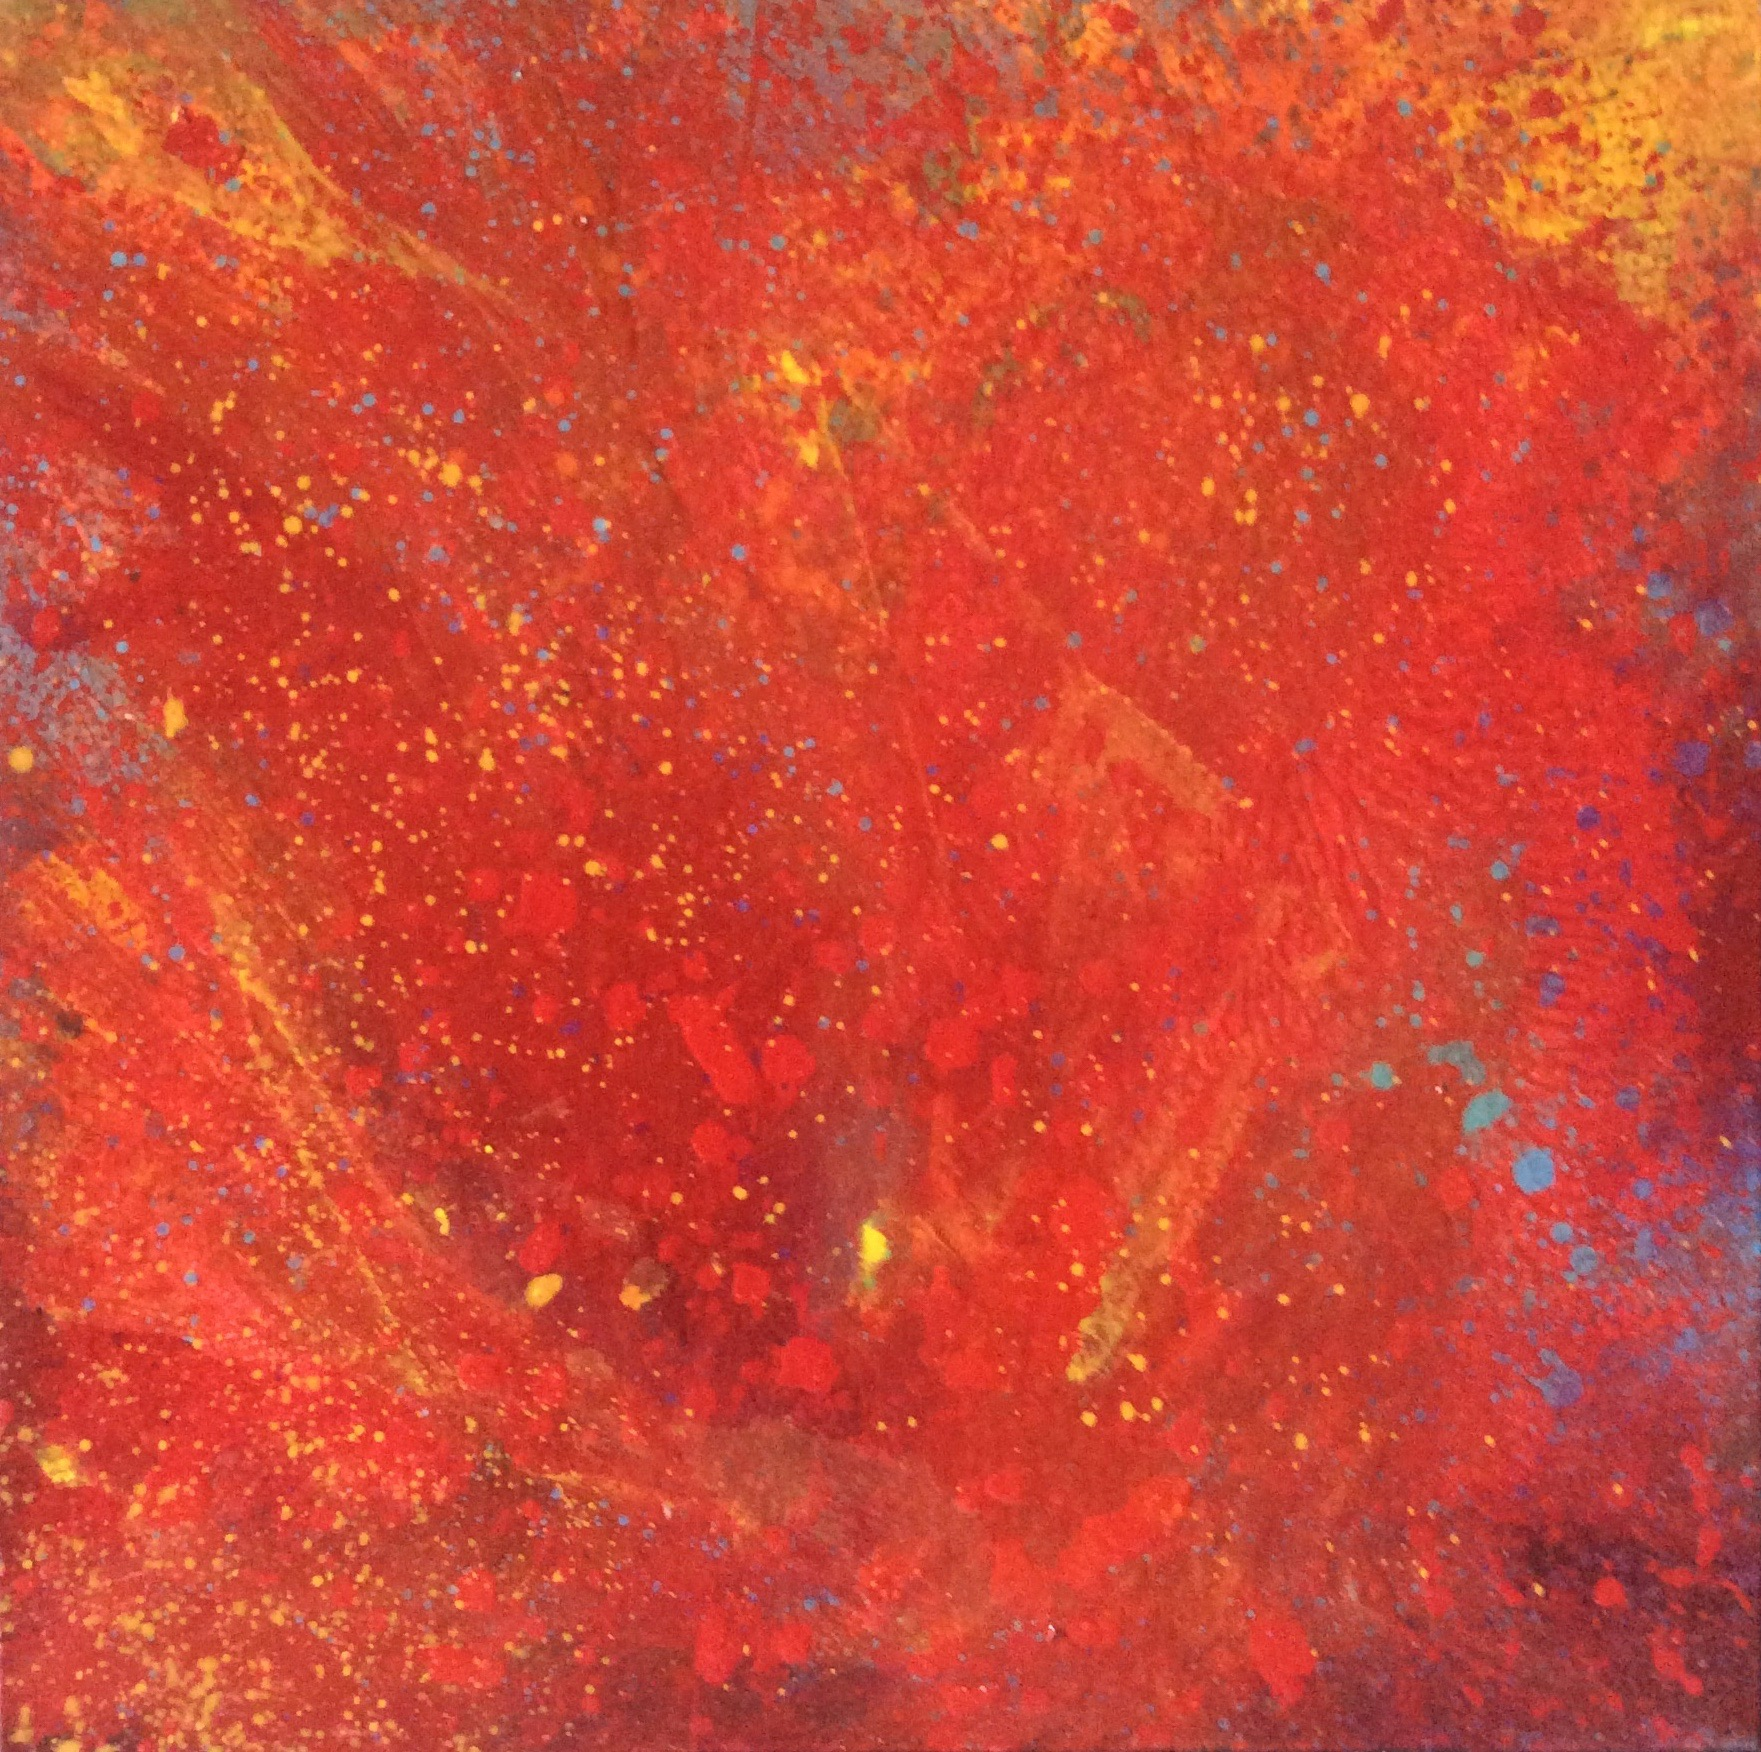 Fire, 2014  24 x 24 inches